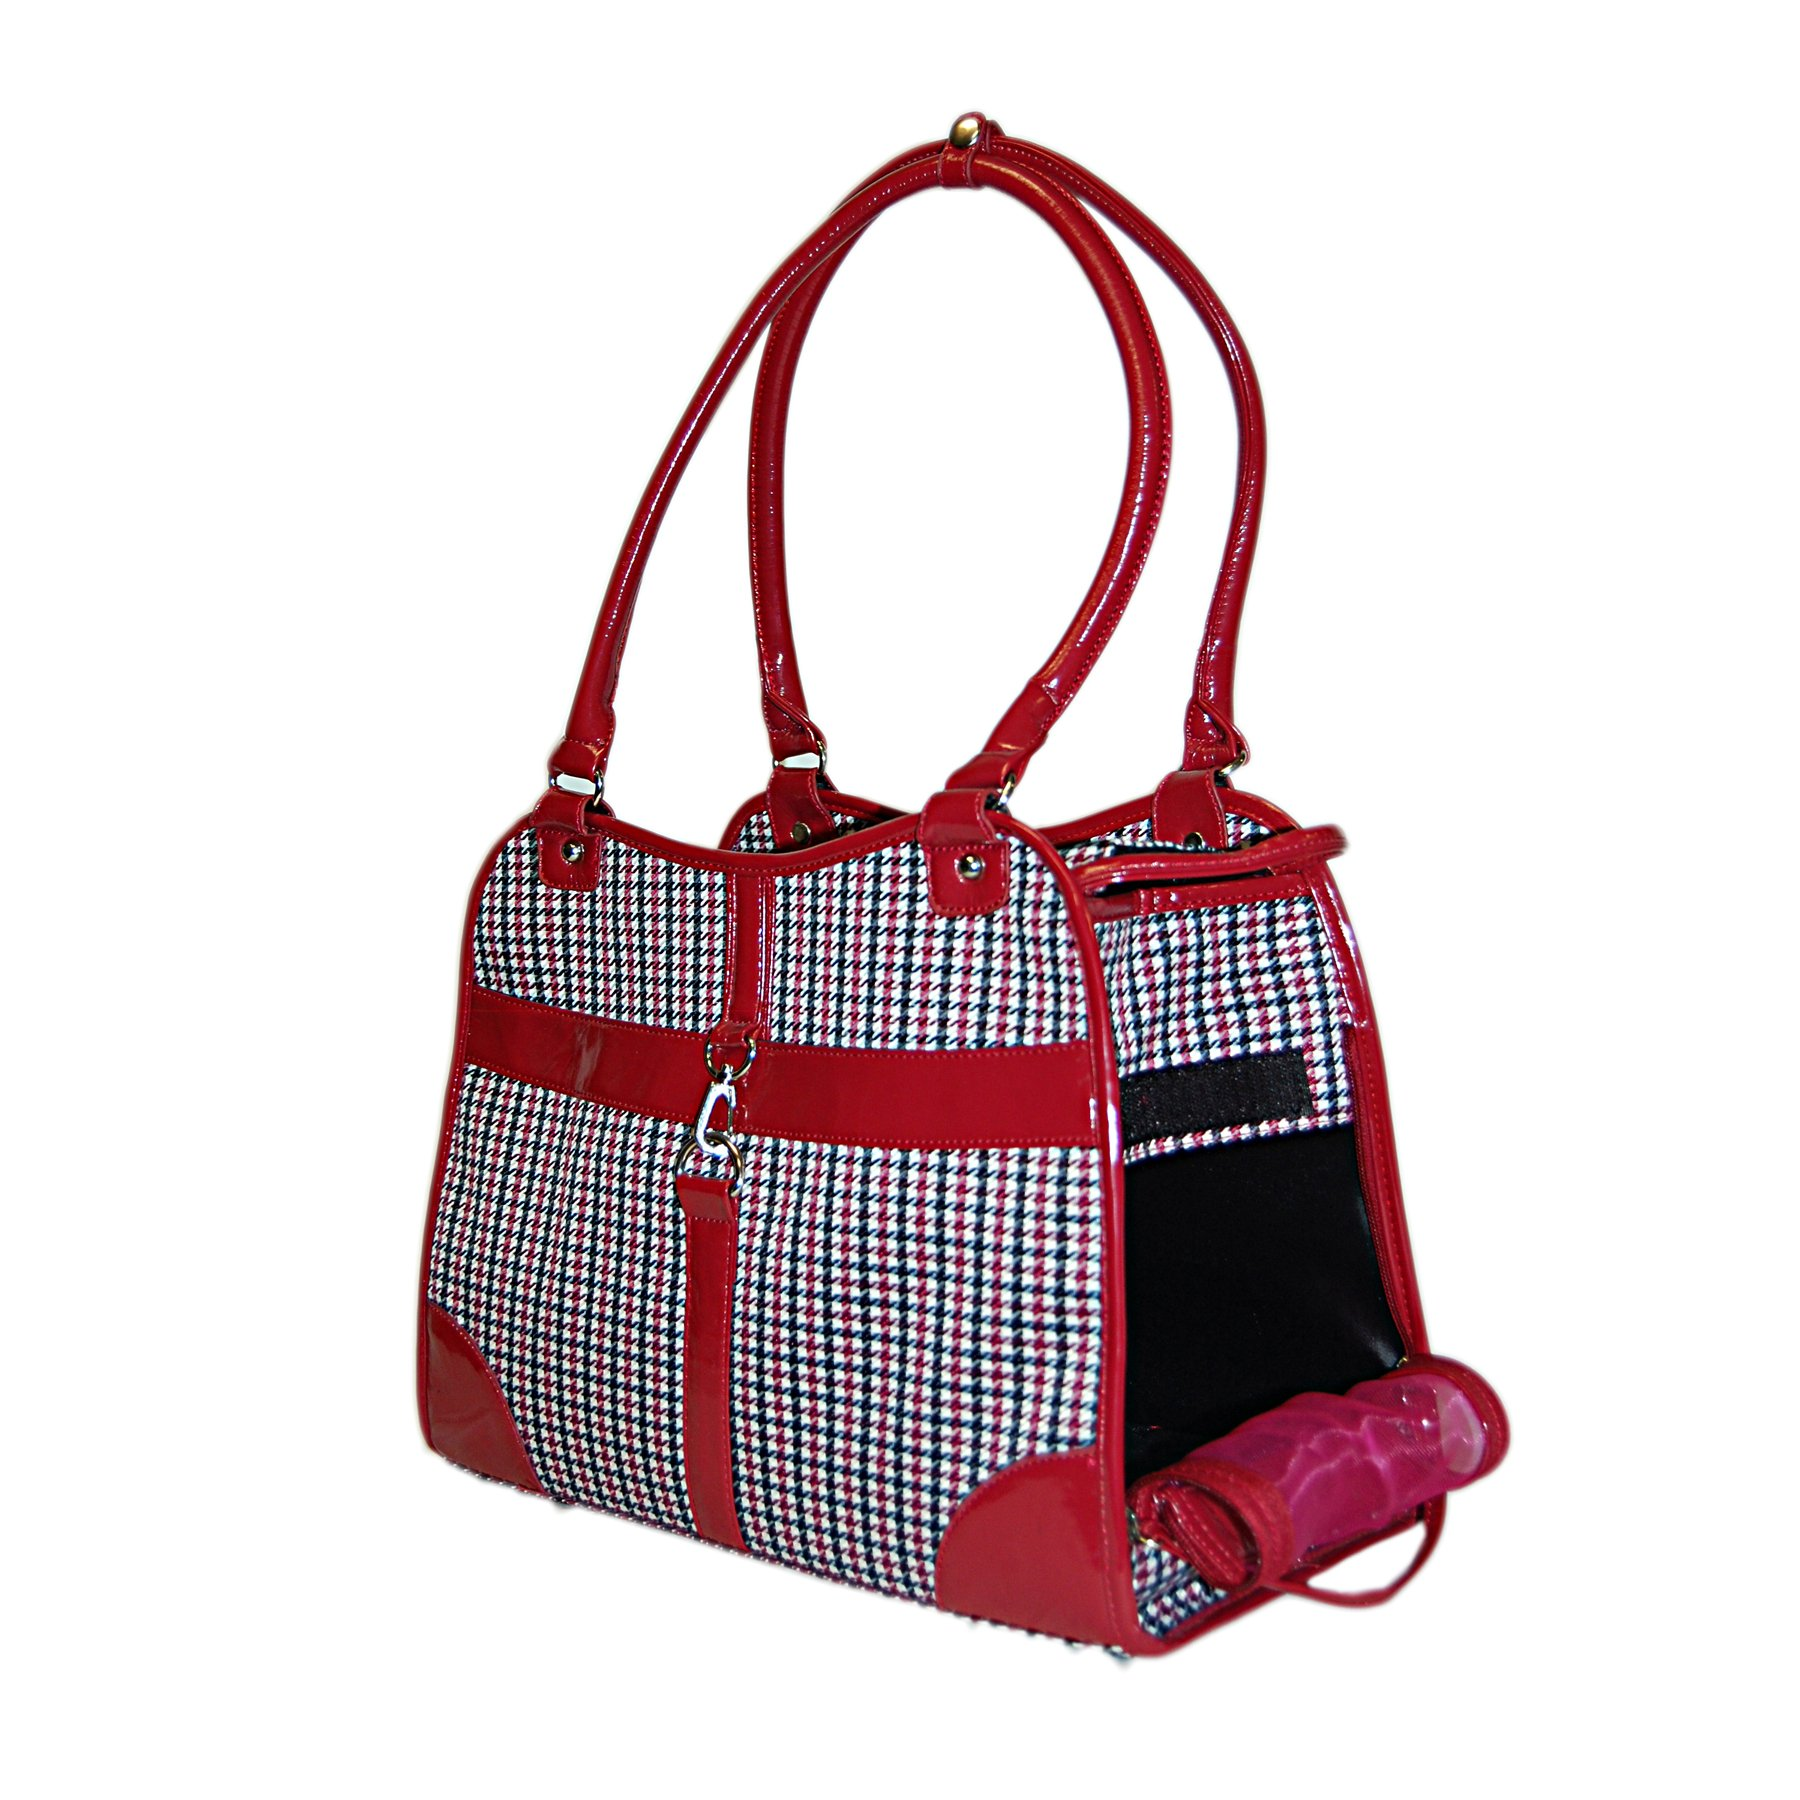 Anima Houndstooth Purse Carrier, 13.5-Inch by 6.5-Inch by 10.5-Inch, Red